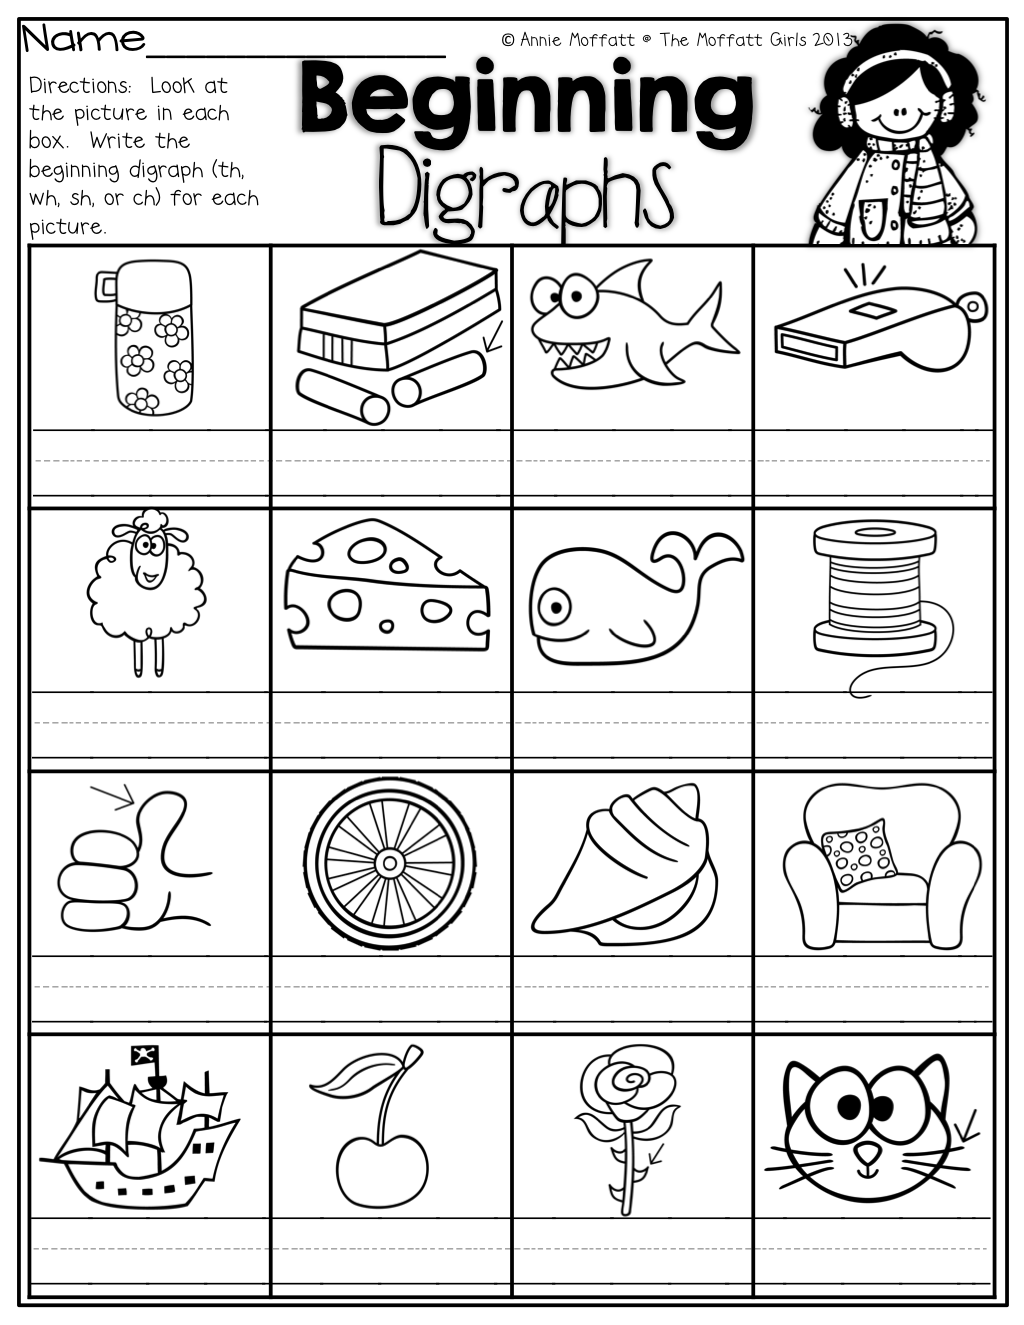 worksheet Ch Worksheet beginning digraphs write the for each picture th wh sh